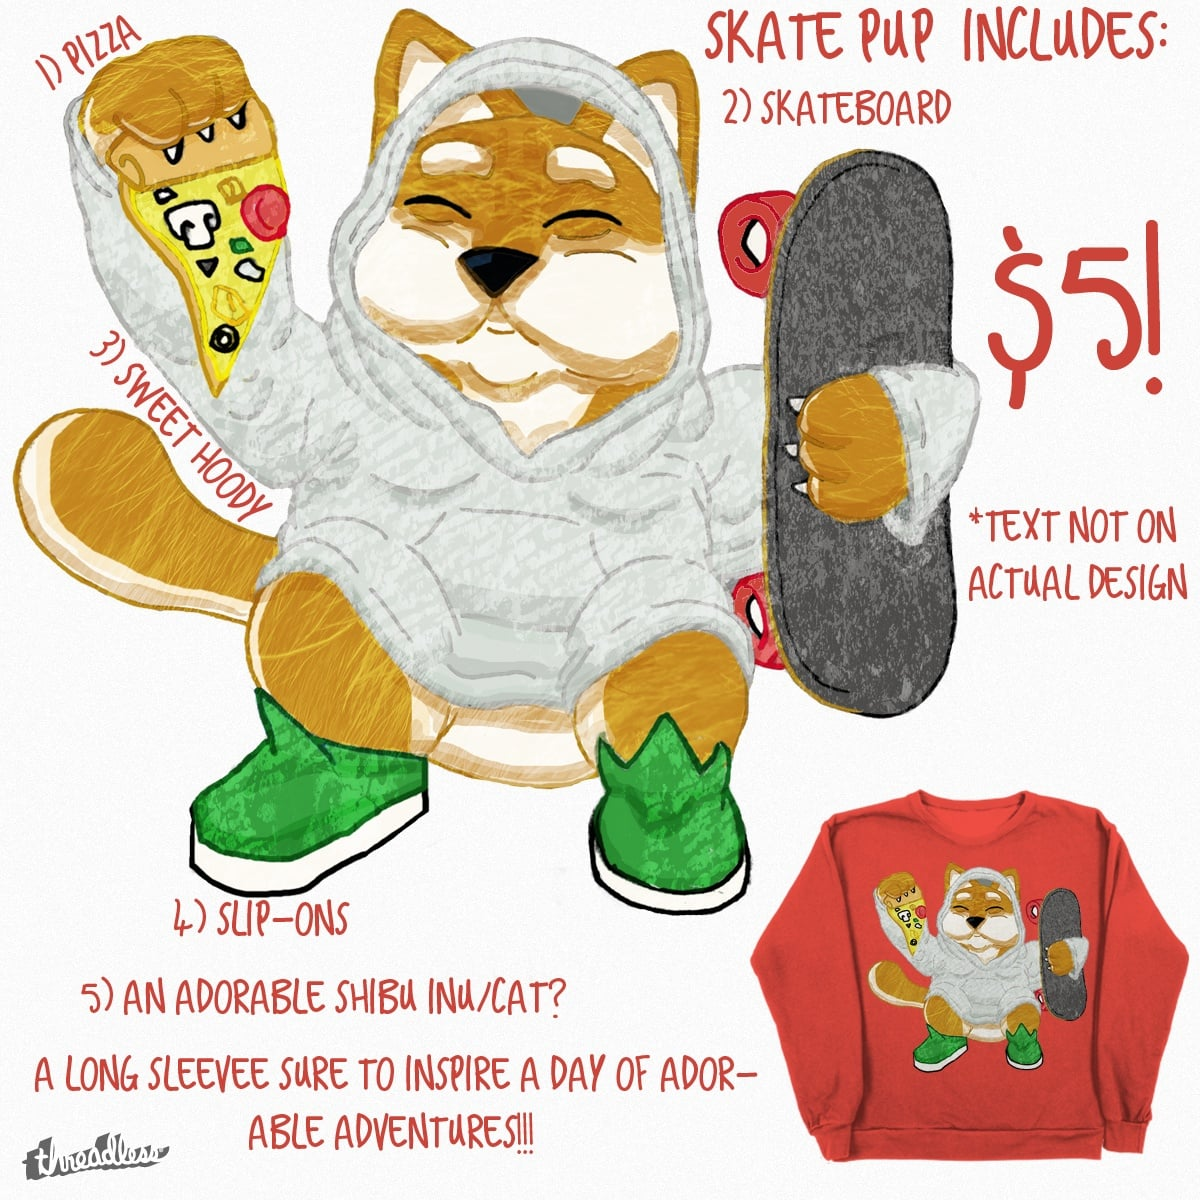 Skate Pup by garryson on Threadless